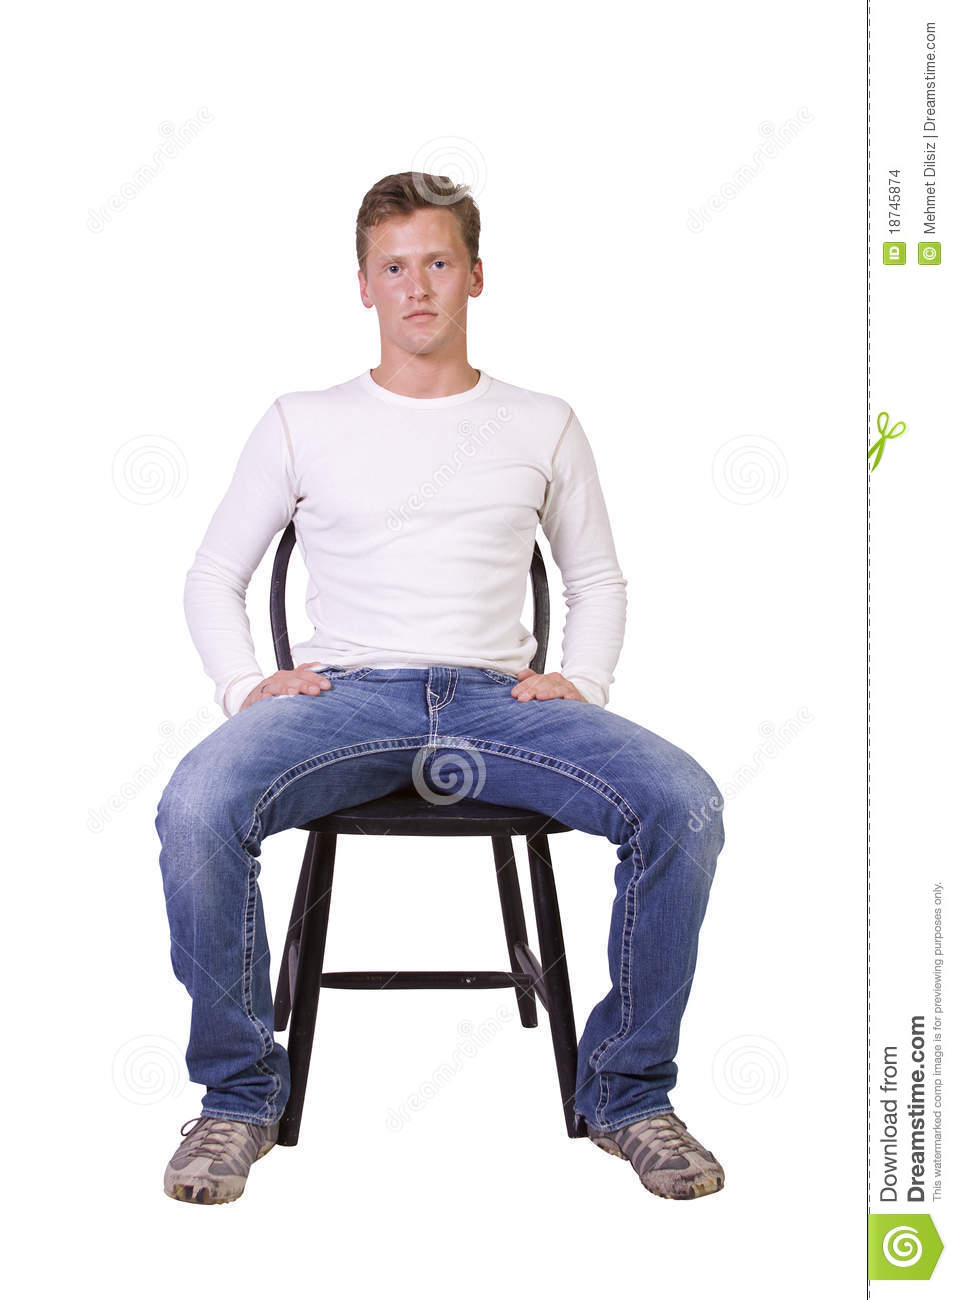 Man in chair images galleries with a for Sitting chairs